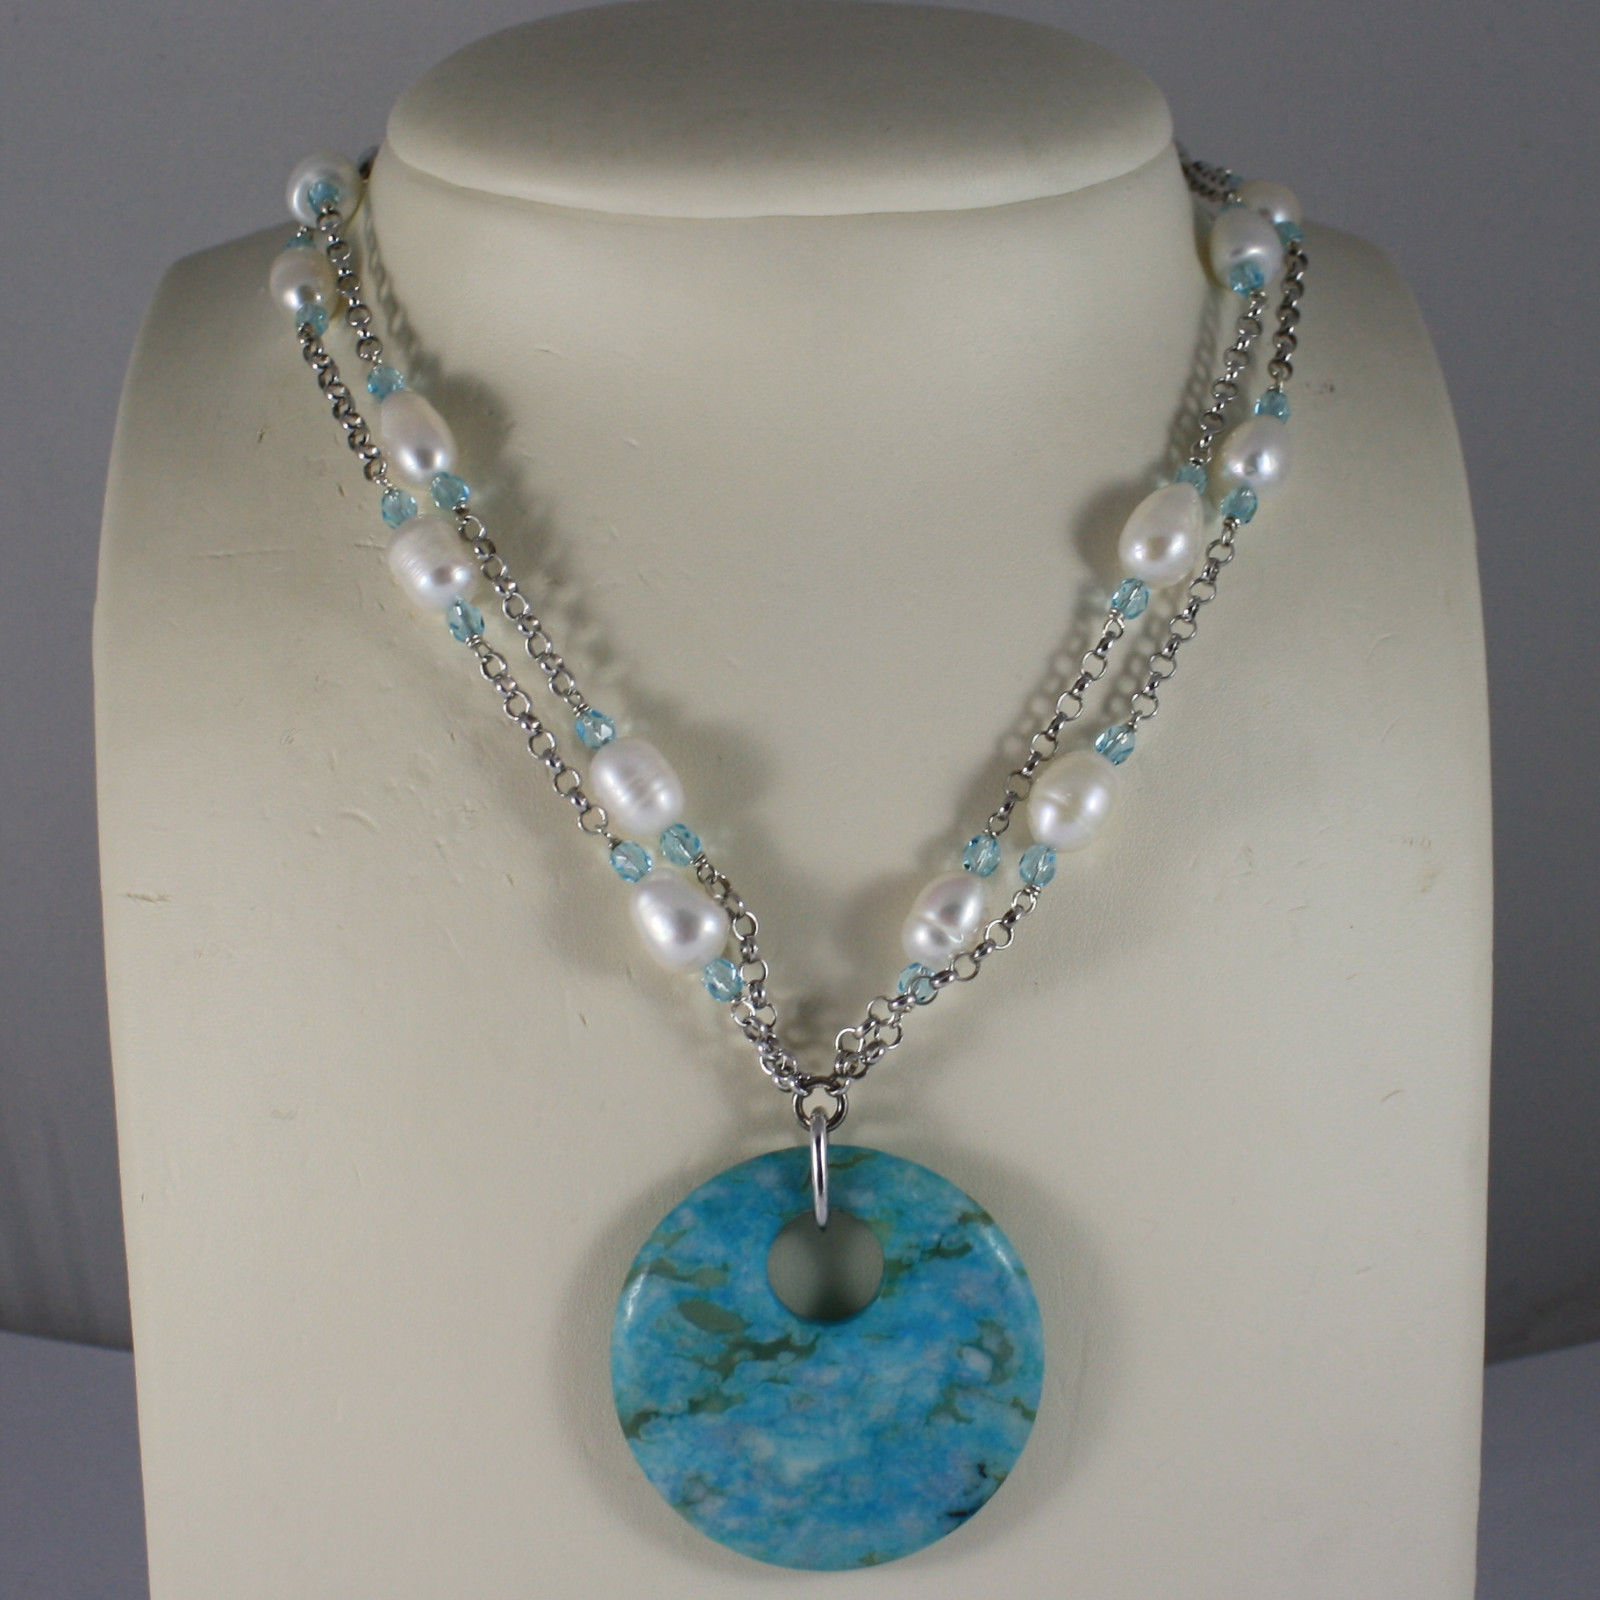 .925 RHODIUM NECKLACE WITH BLUE CRYSTALS, WHITE PEARLS AND TURQUOISE MEDALLION